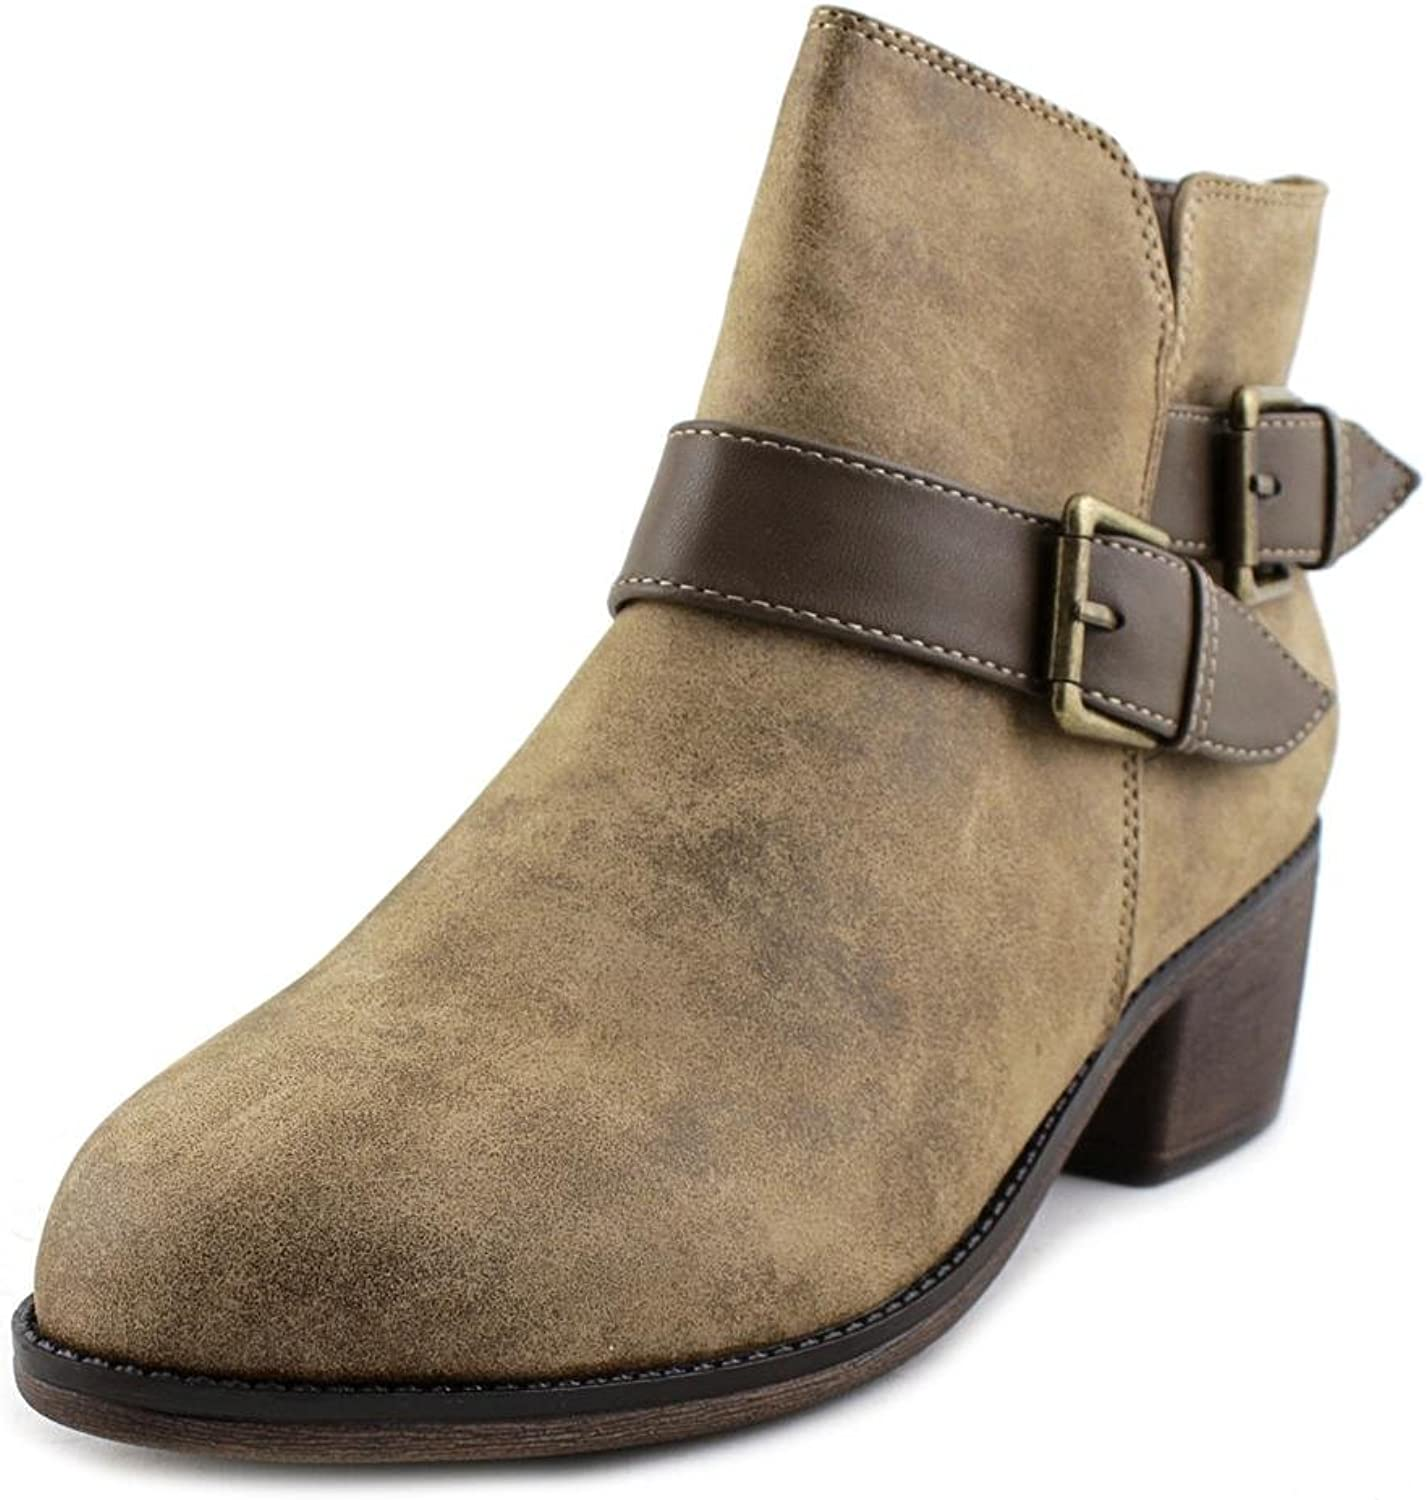 SEVEN DIALS Womens Yosepha Closed Toe Ankle Fashion Boots, Stone, Size 10.0